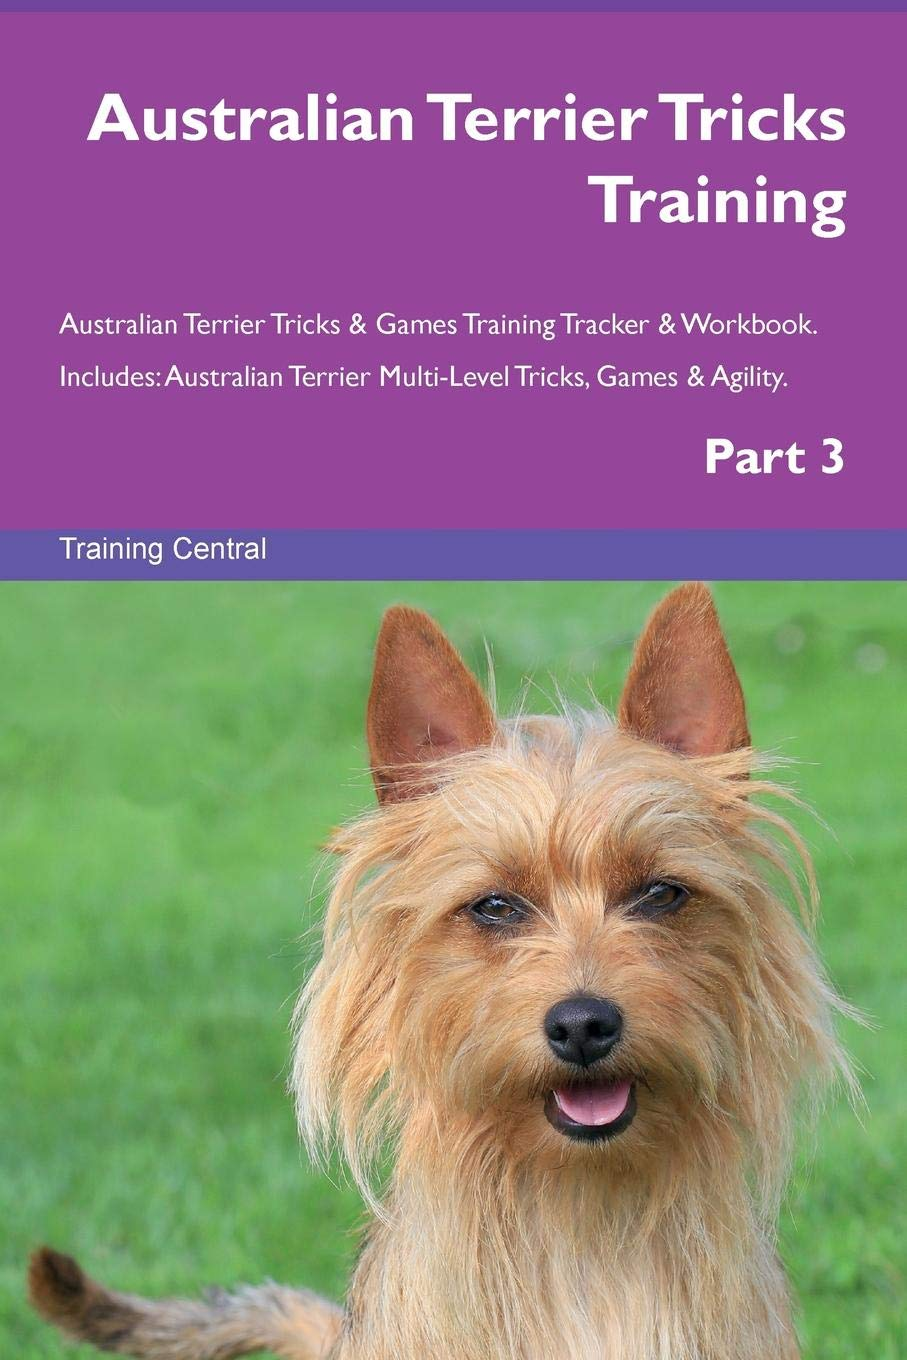 Australian Terrier Tricks Training Australian Terrier Tricks & Games Training Tracker & Workbook. Includes: Australian…